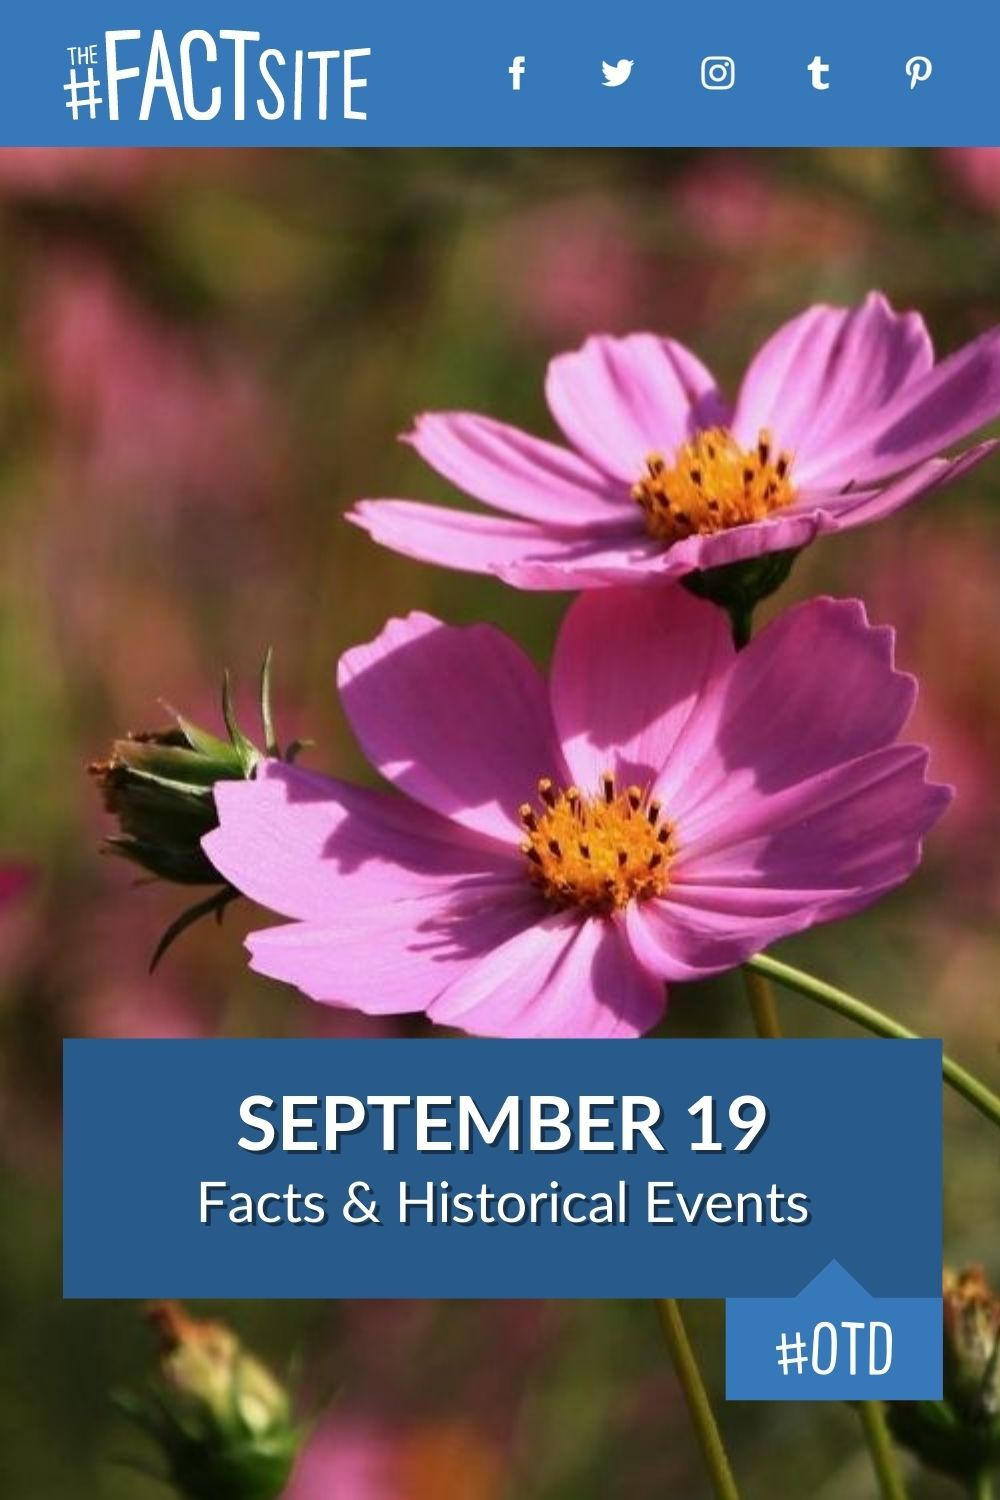 Facts & Historic Events That Happened on September 19